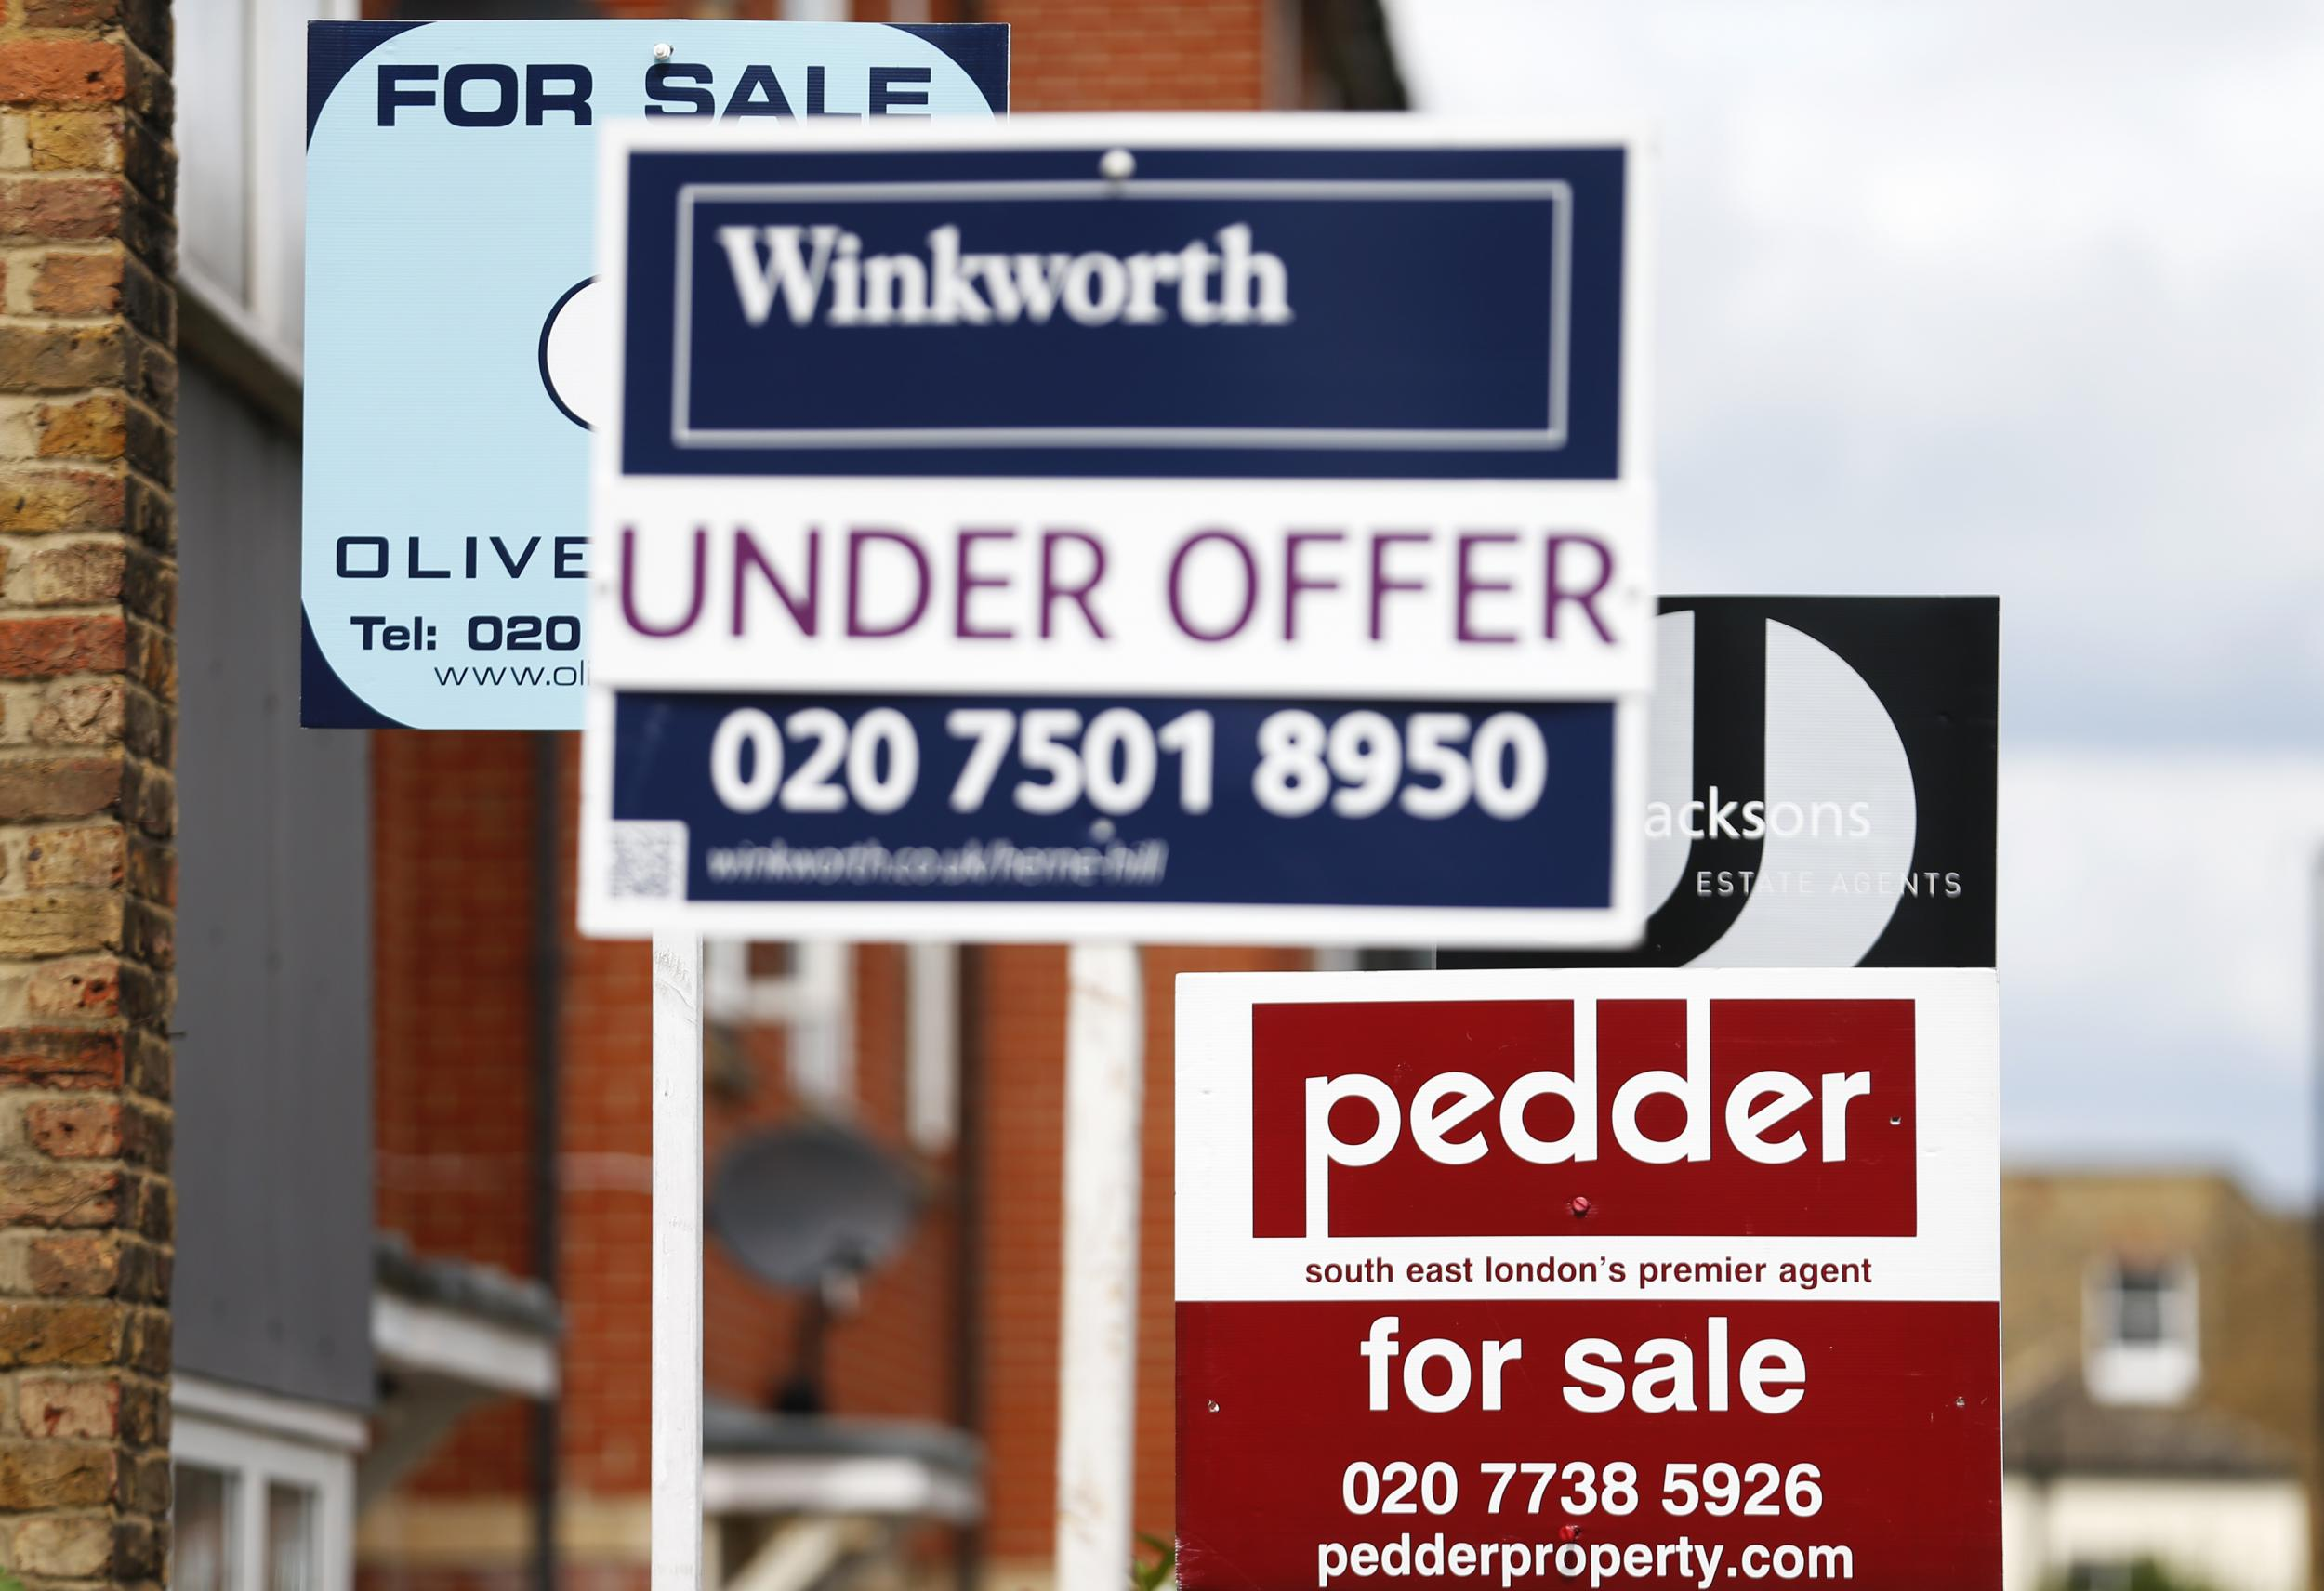 Home sales jump as looming Brexit deadline unleashes pent-up demand